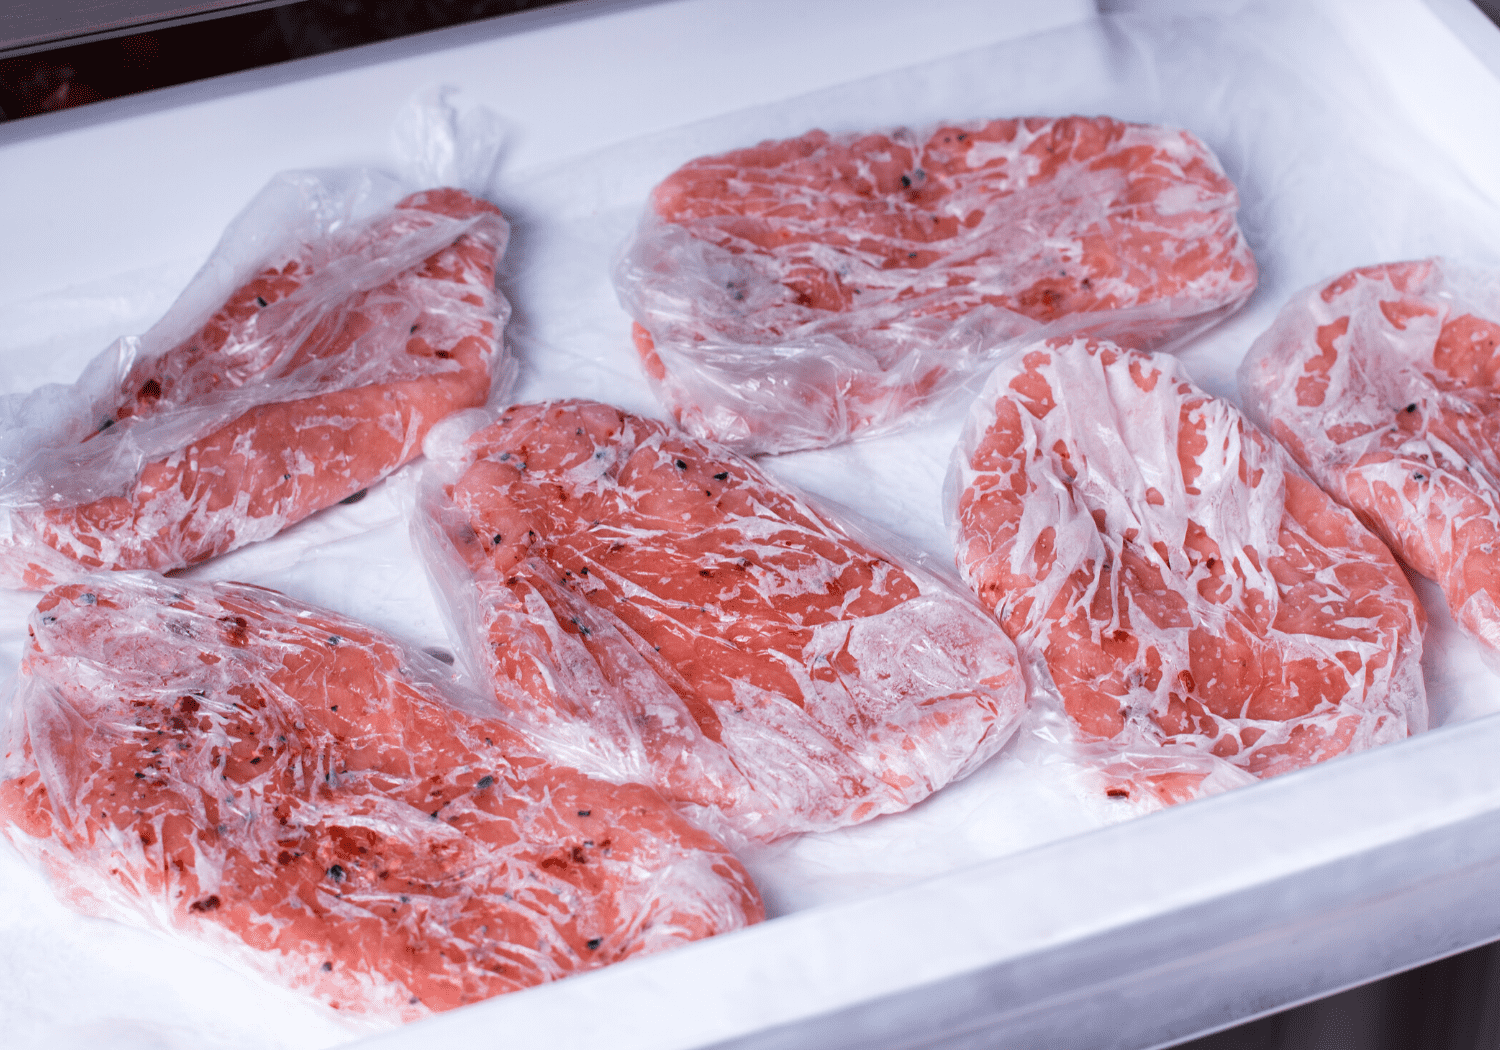 20363157 3b2c 47a9 8a86 721f75c2bcd5 how long can you freeze meat